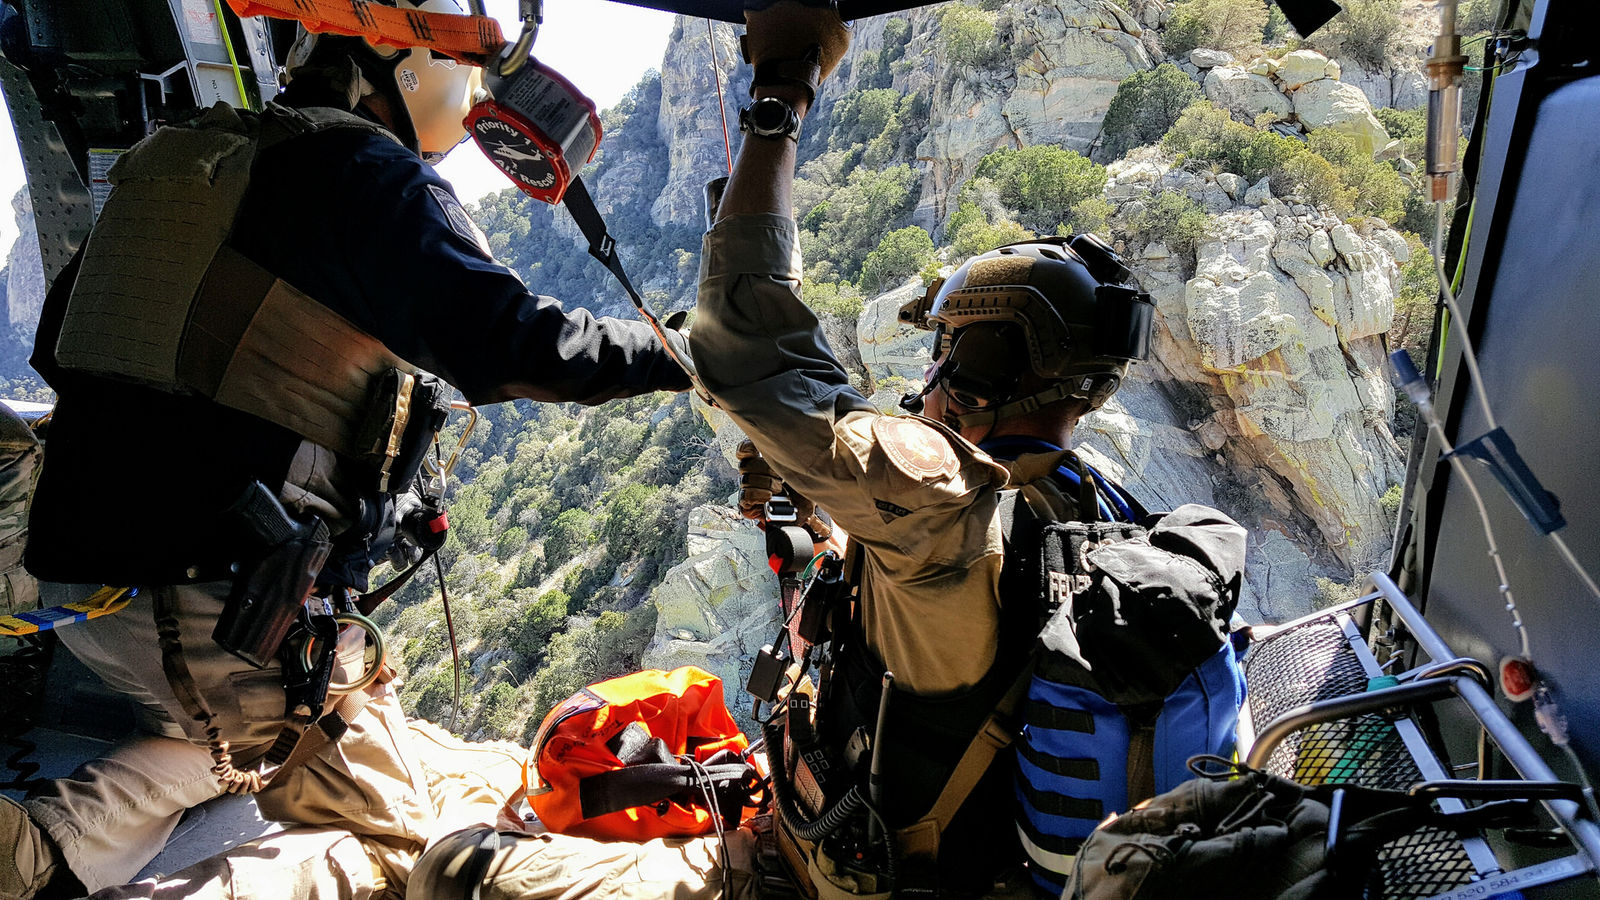 Tucson Sector BORSTAR agents and members from the Tucson Air Branch worked to locate, stabilize and rescue a Guatemalan man who was injured west of Tucson. (Photo provided by: U.S. Customs and Border and Protection)